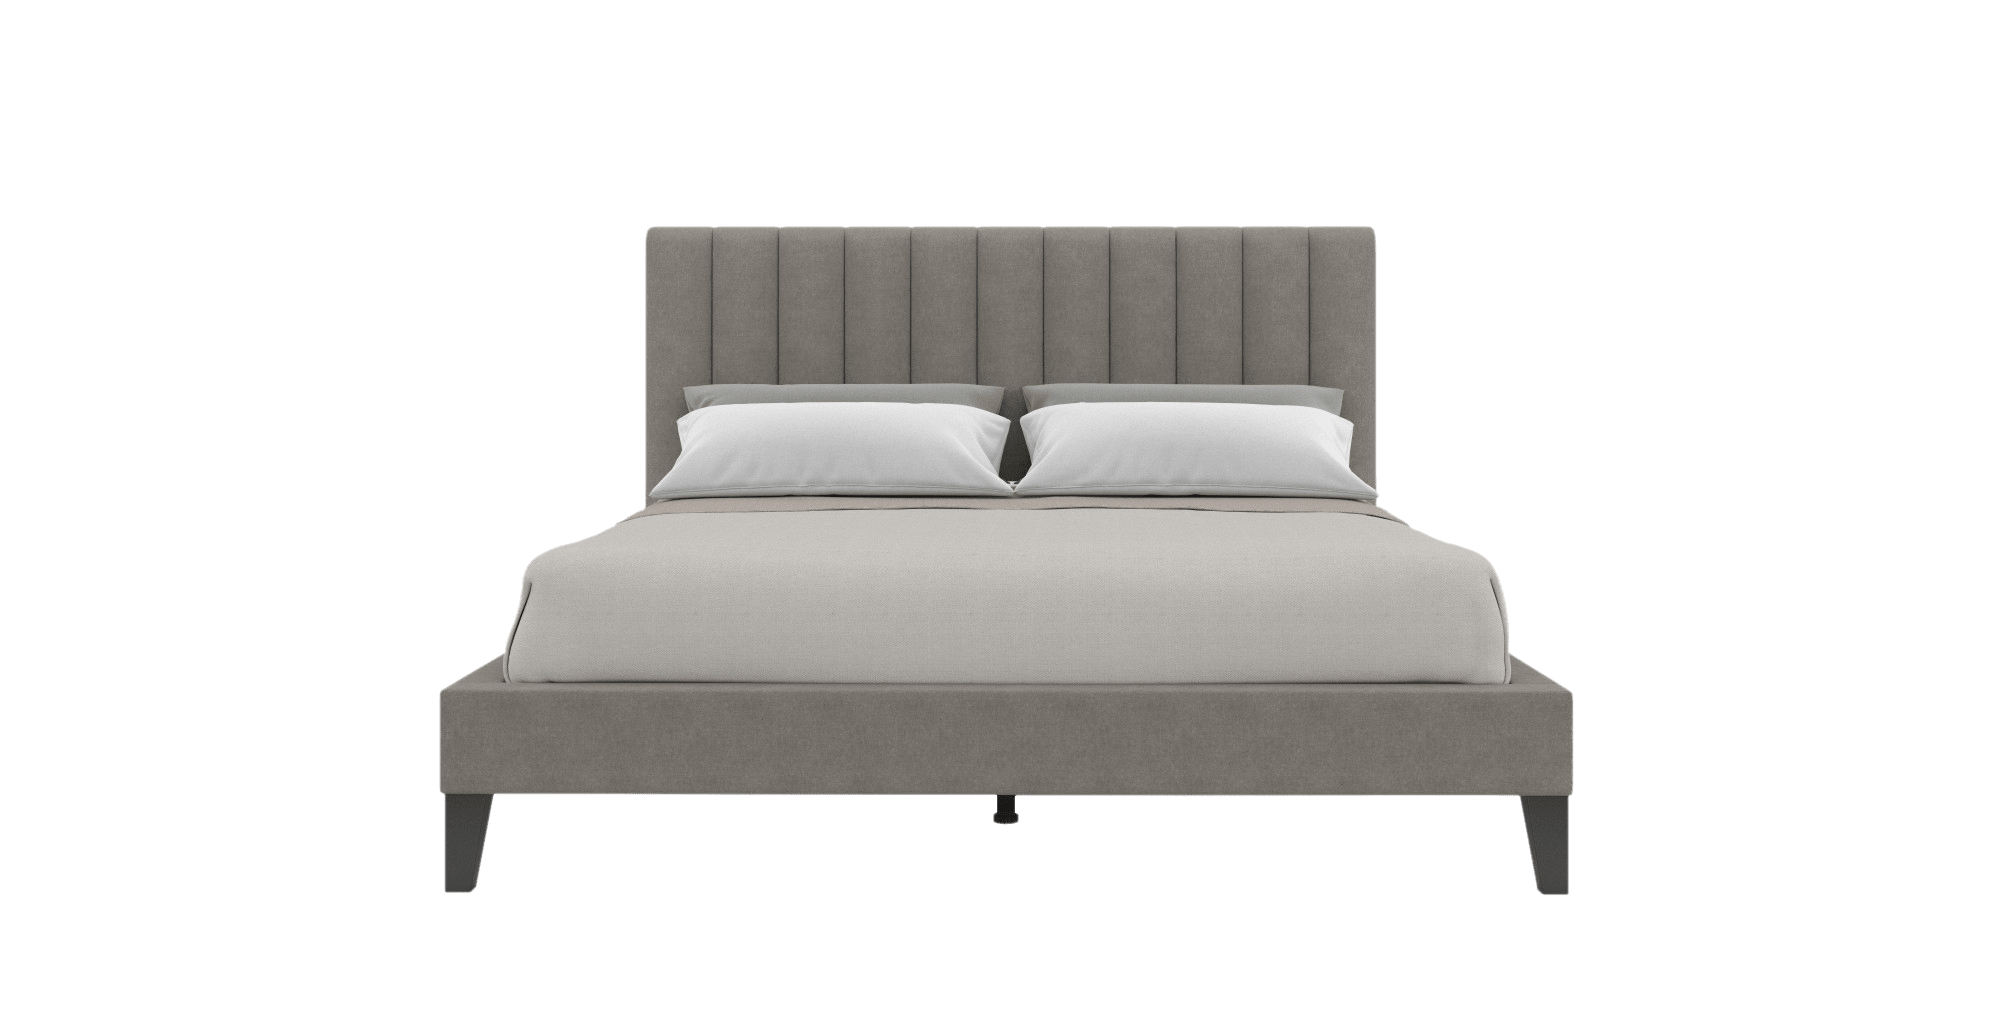 Megan King Size Bed Frame King size bed frame, Bed frame